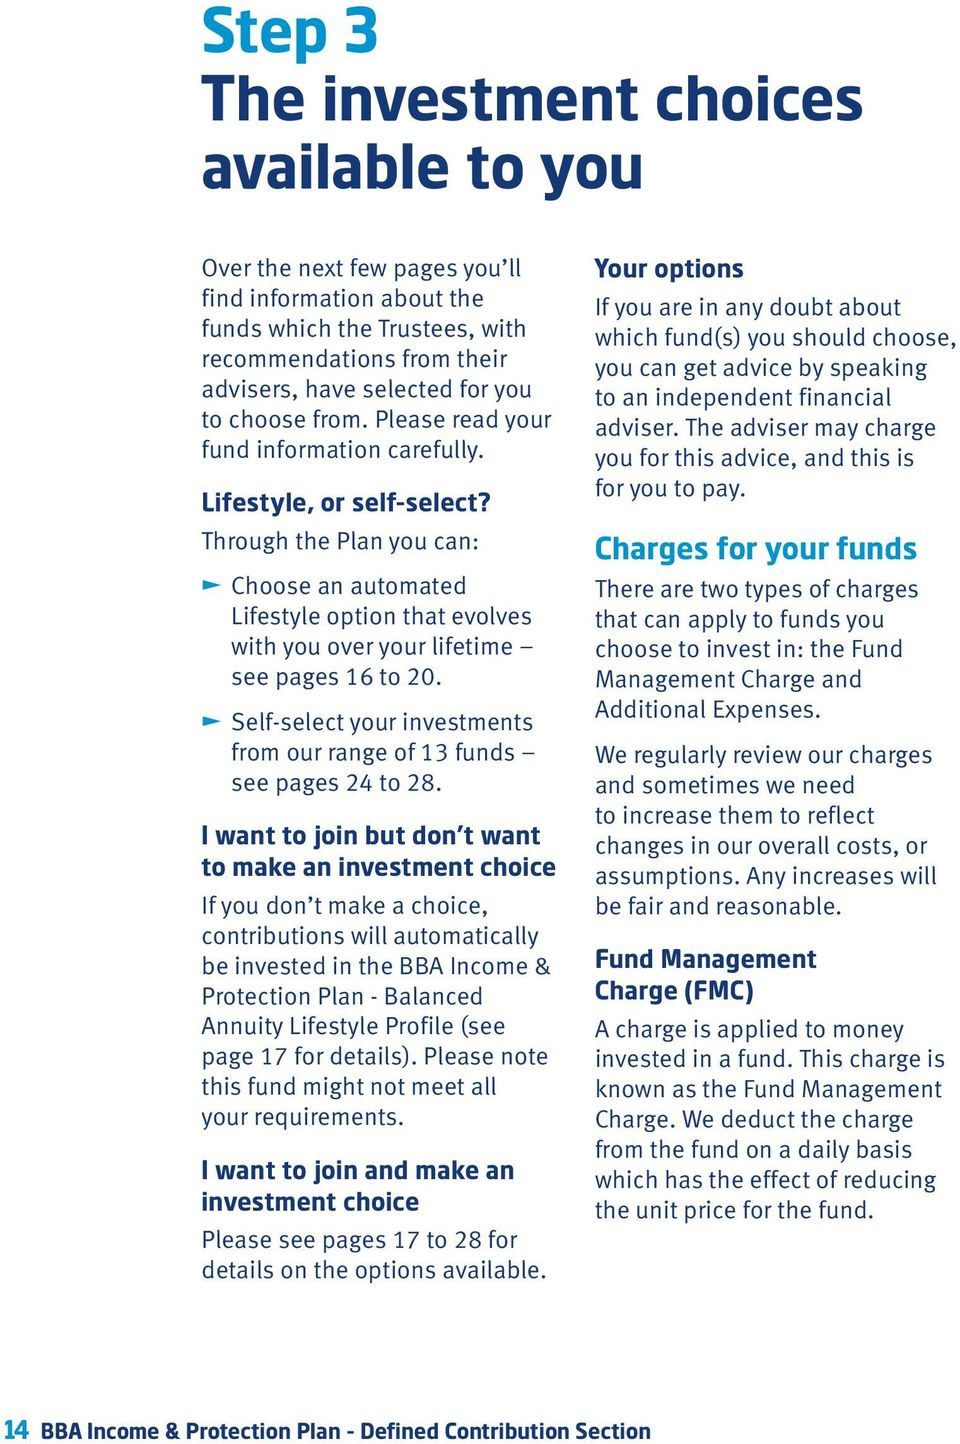 Through the Plan you can: Choose an automated Lifestyle option that evolves with you over your lifetime see pages 16 to 20. Self-select your investments from our range of 13 funds see pages 24 to 28.